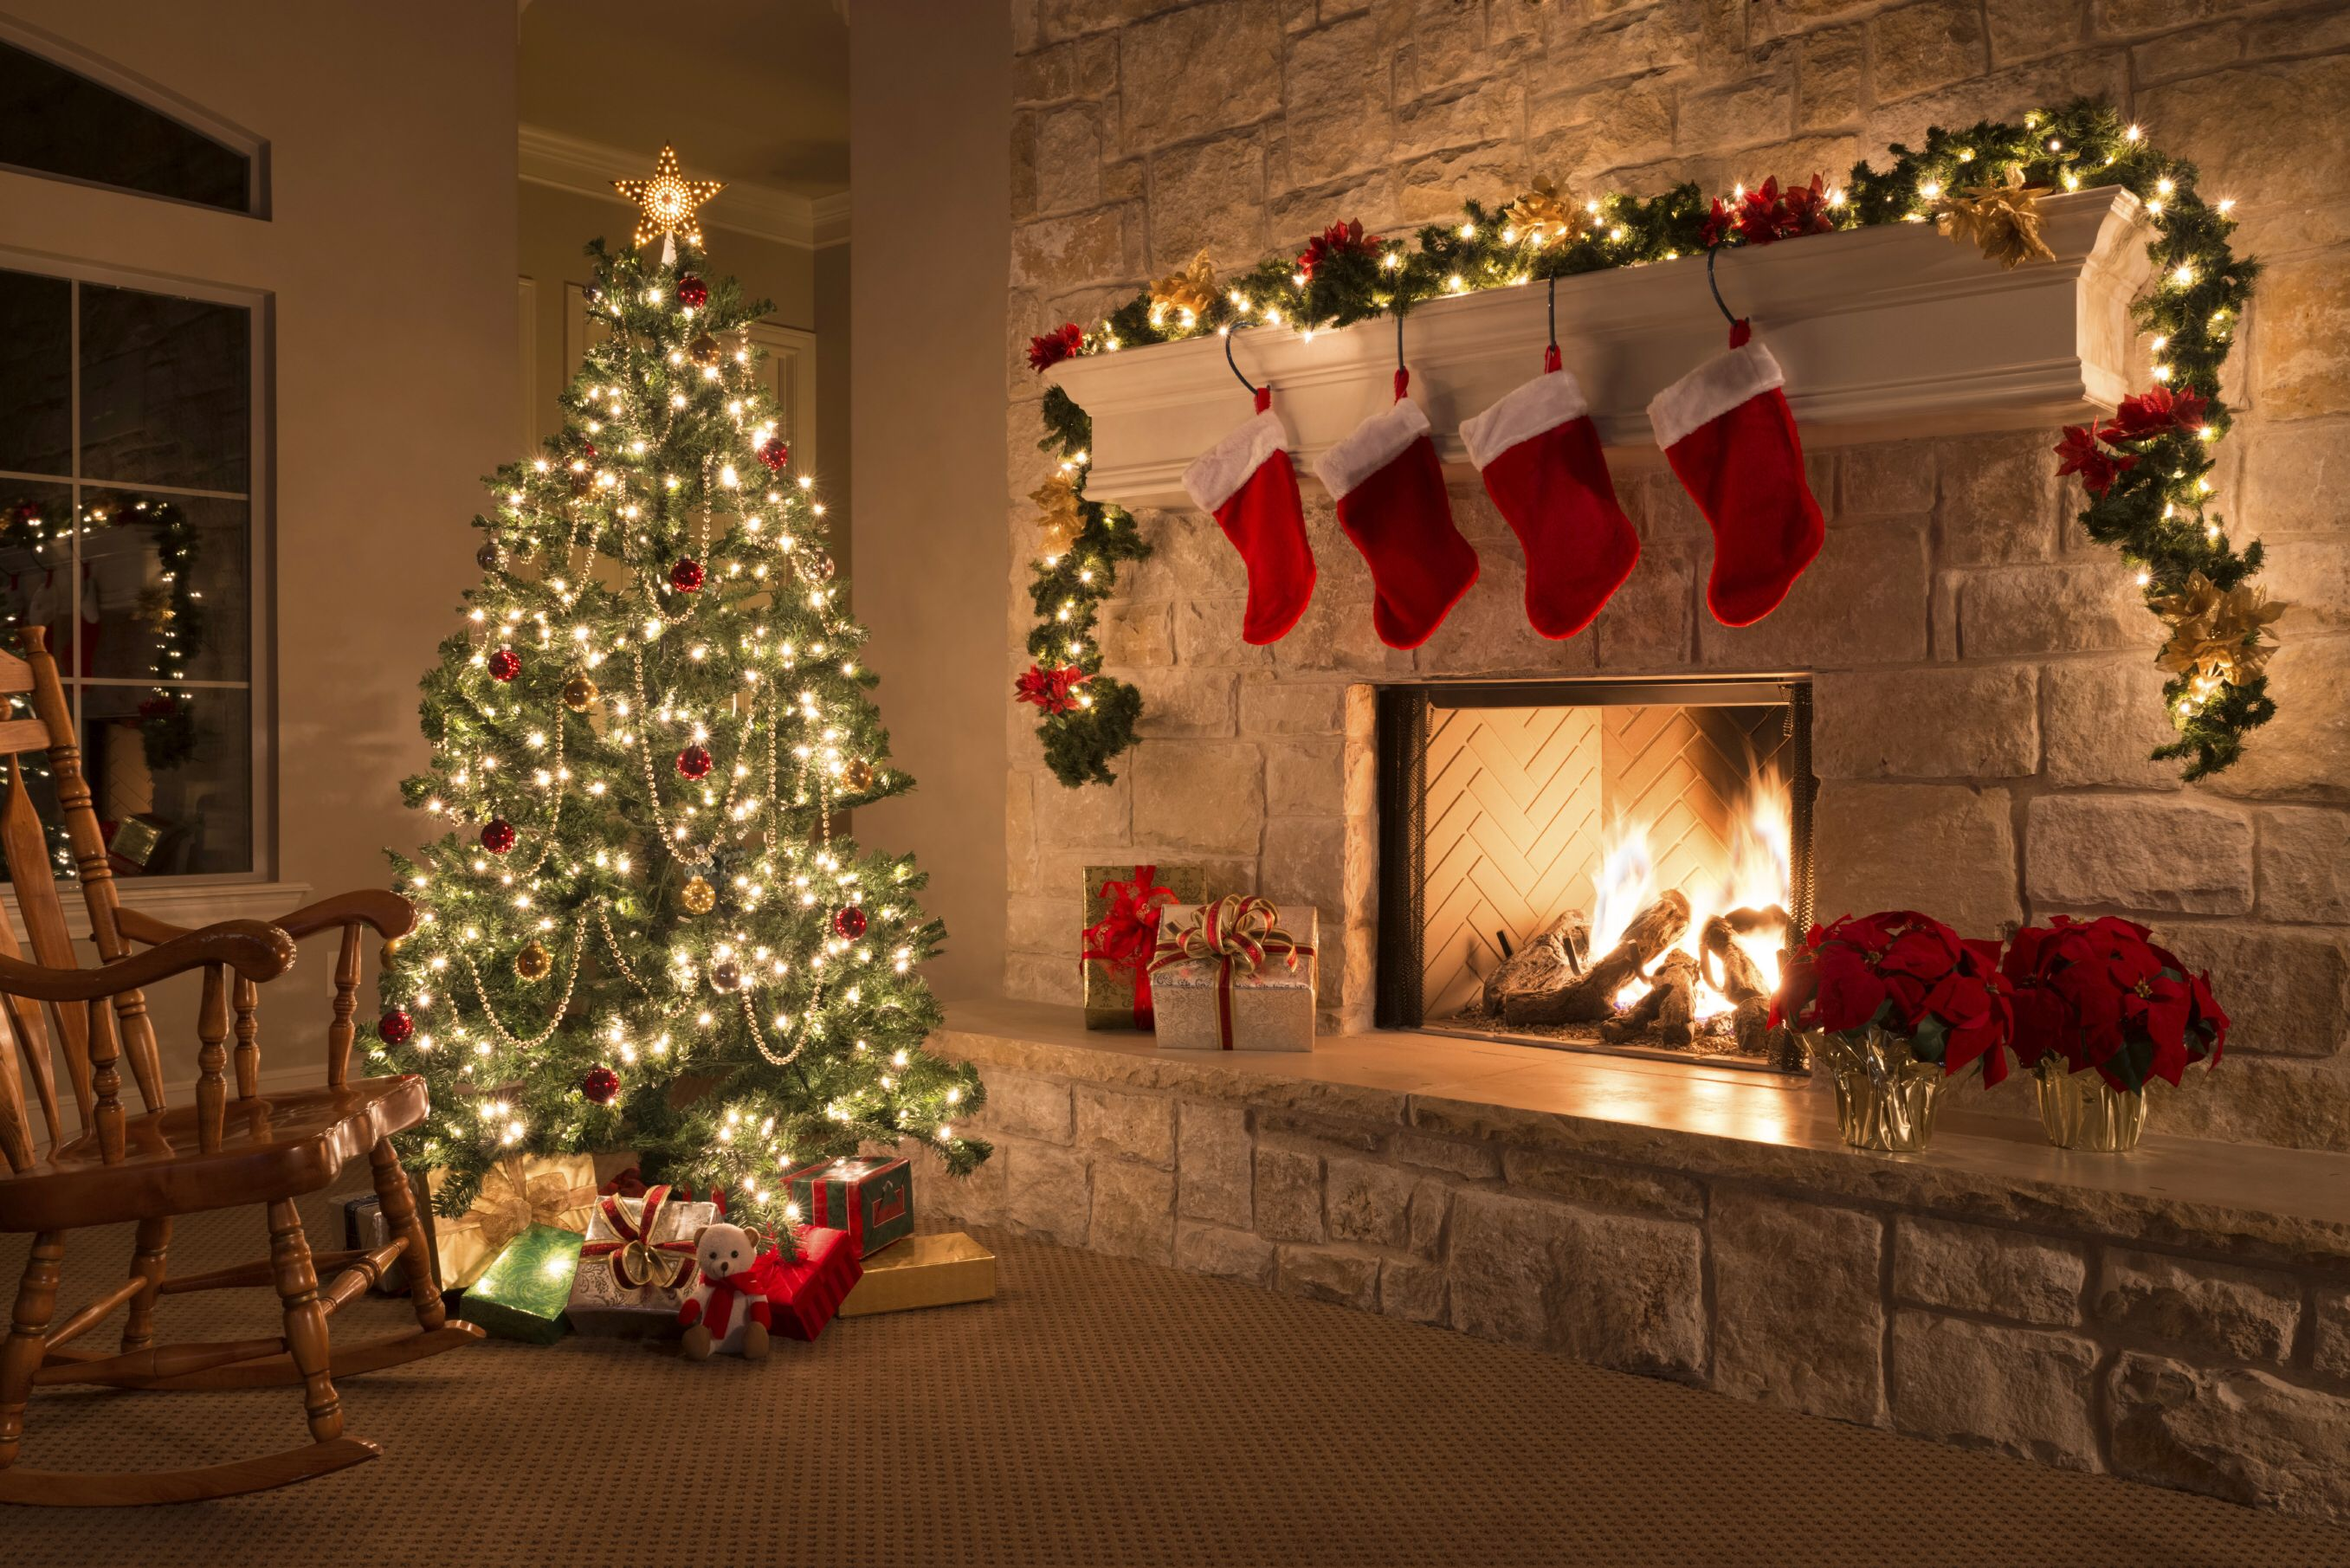 Immagine di http://cdn.history.com/sites/2/2015/04/hith-father-christmas-lights-iStock_000029514386Large.jpg.